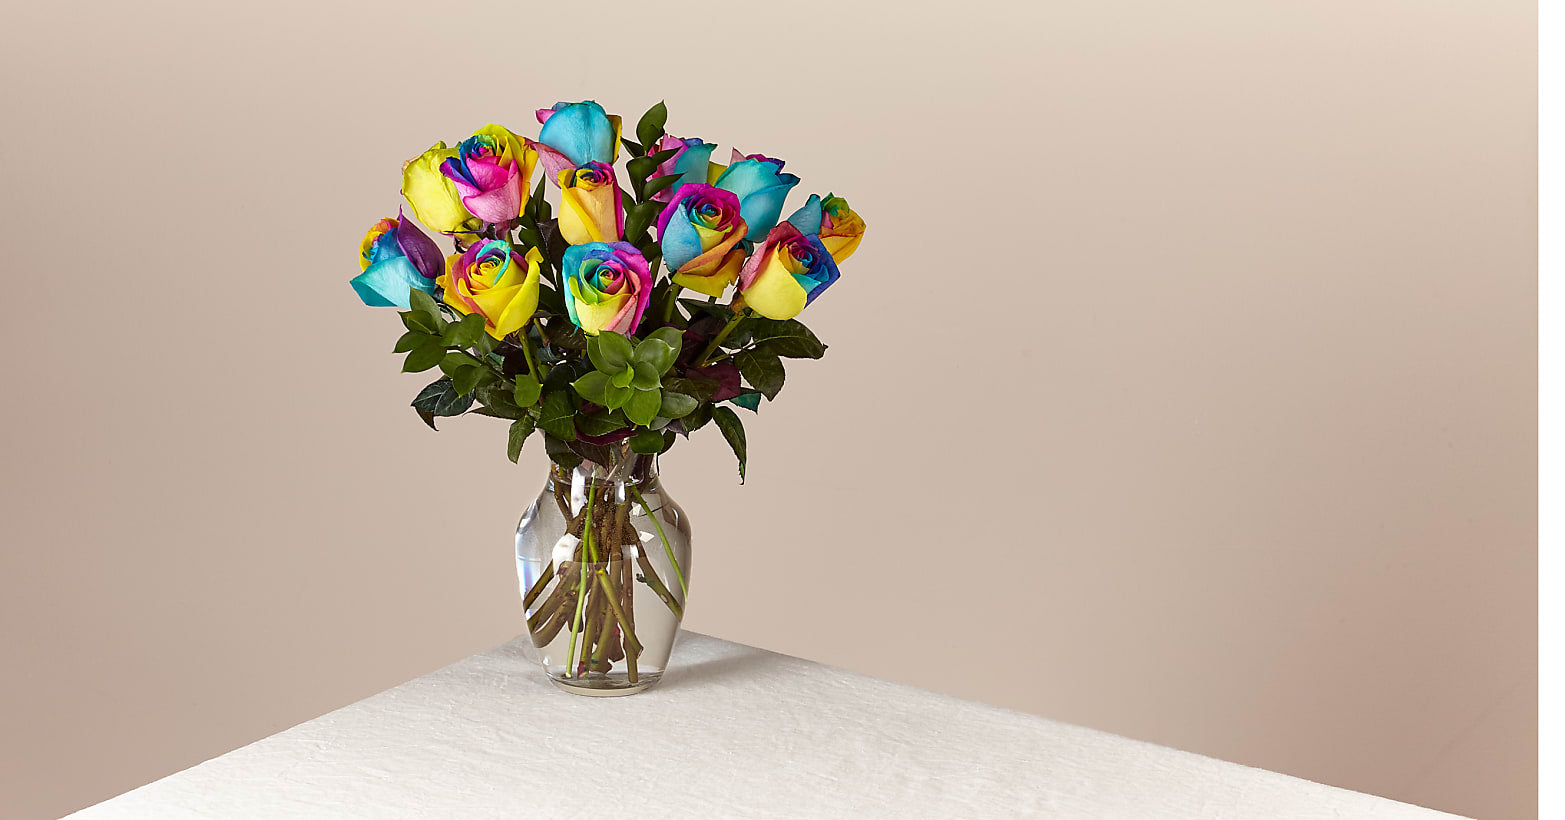 Rainbow Rose Bouquet 12 Stem With Vase - Image 1 Of 2